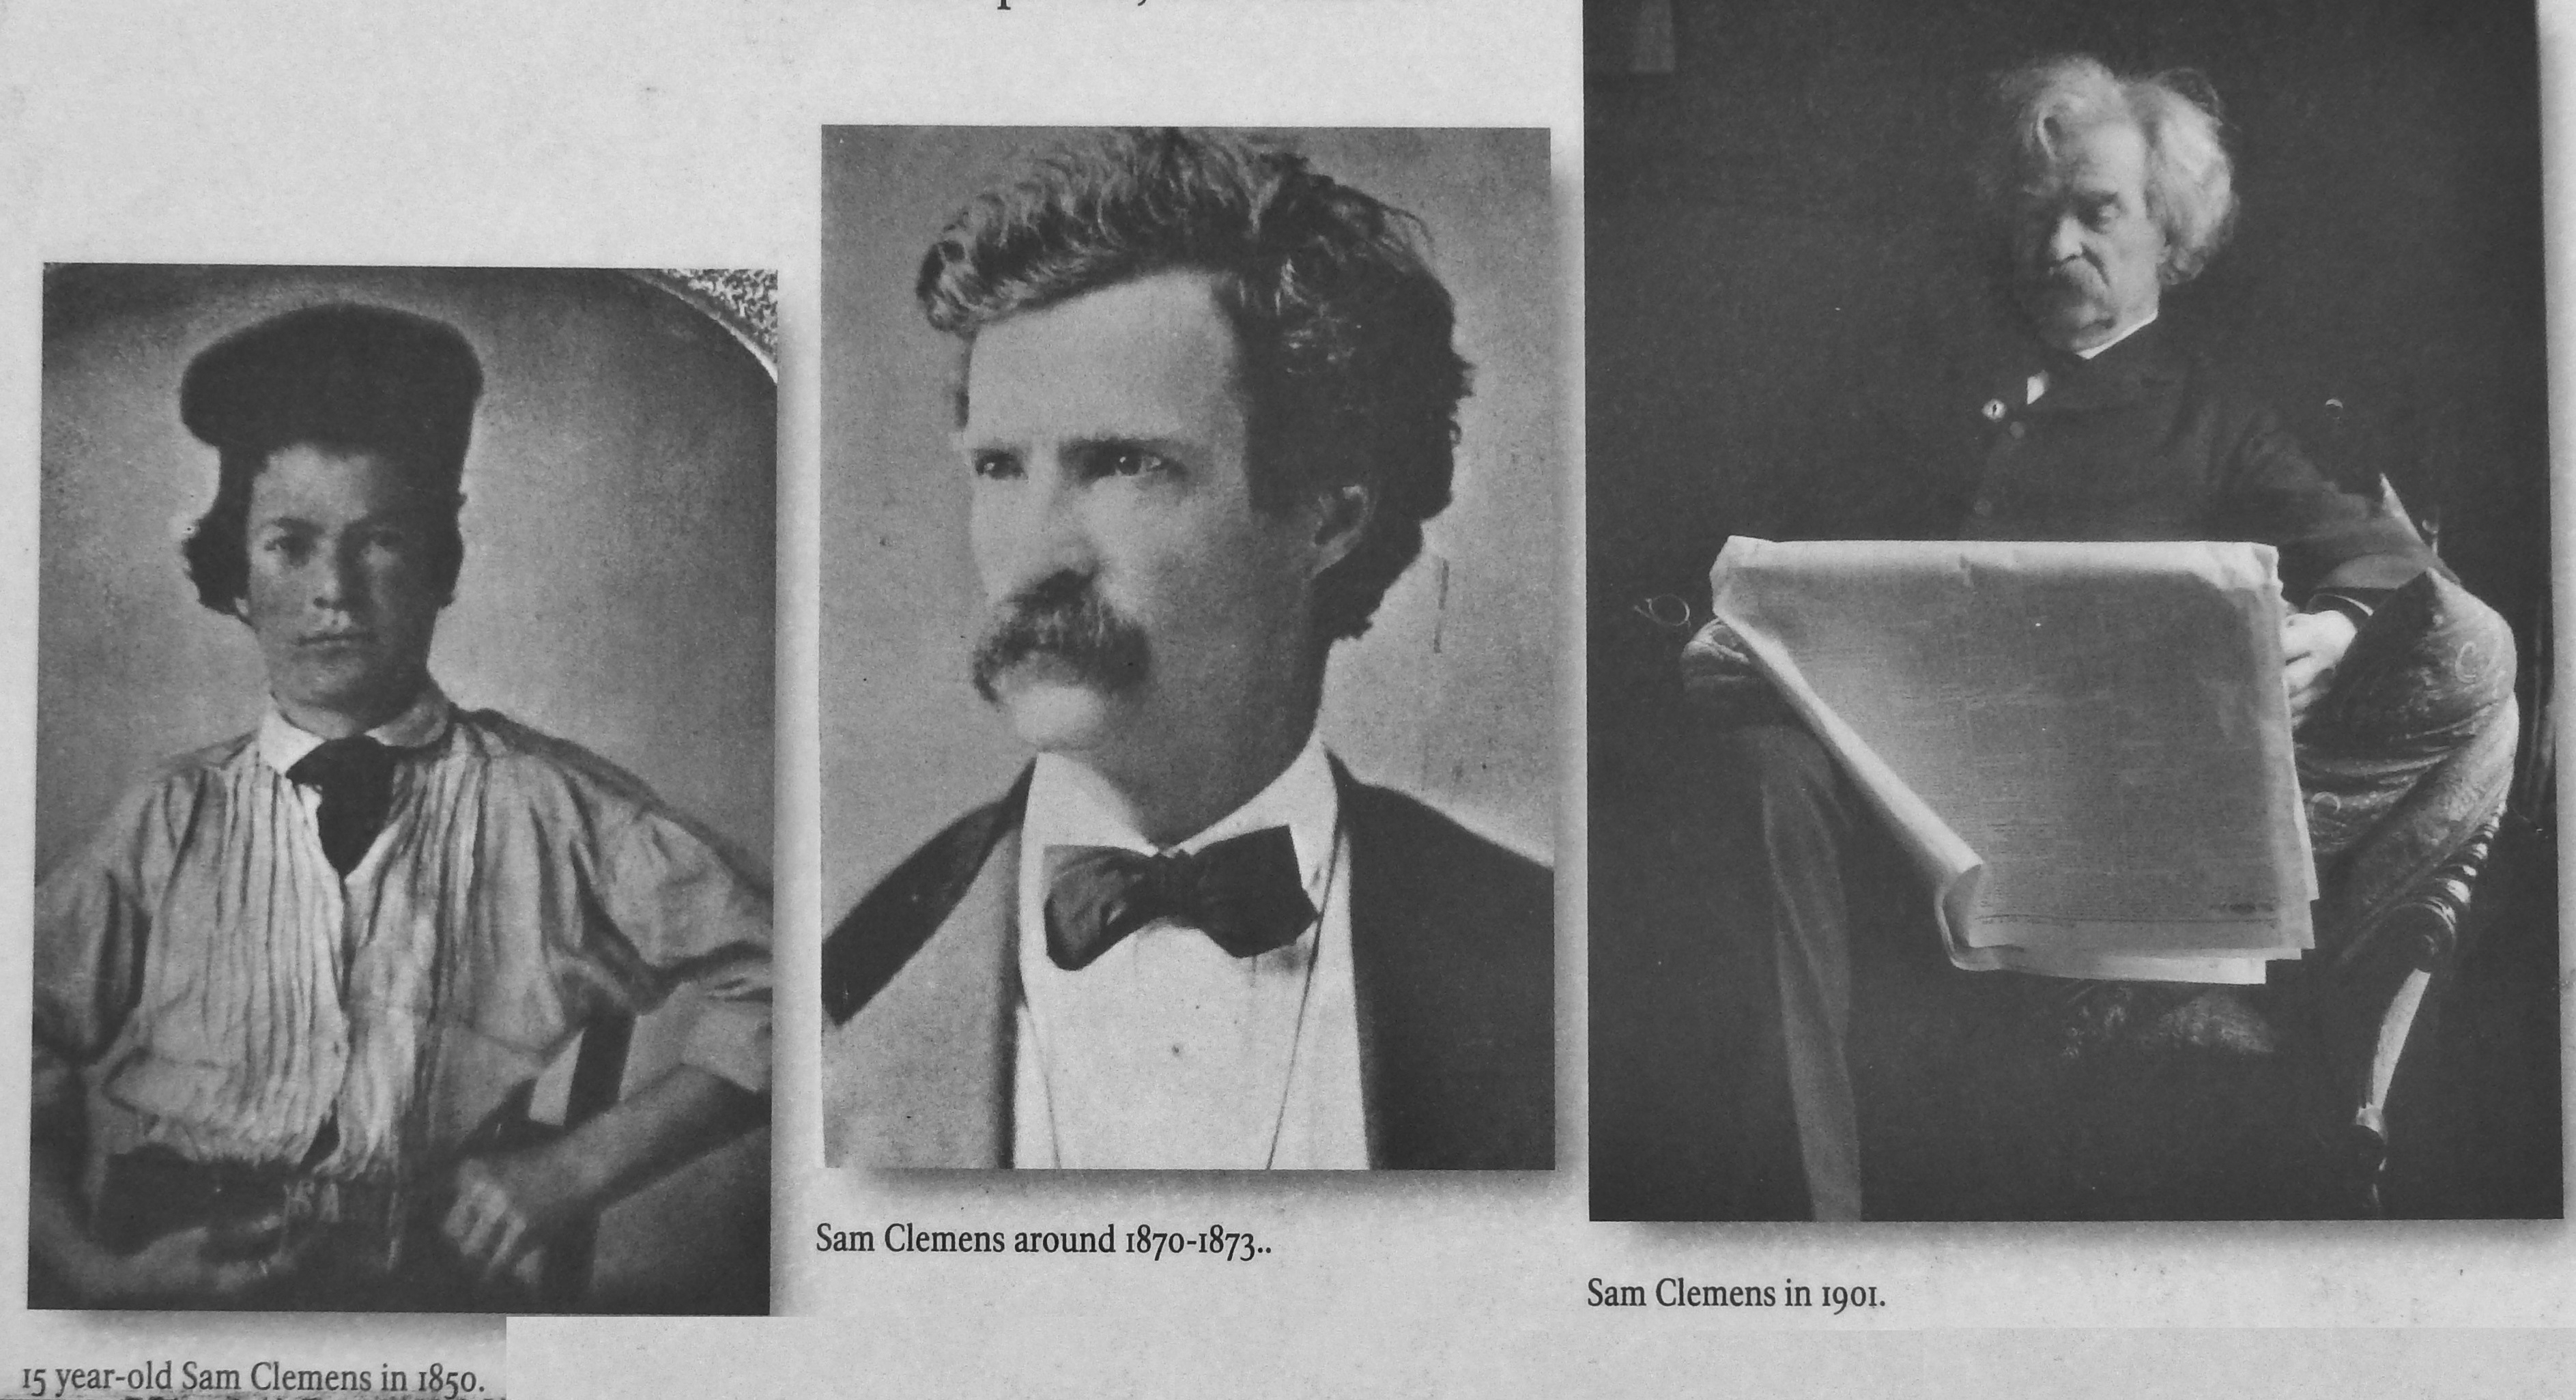 Marker detail: Mark Twain through the years